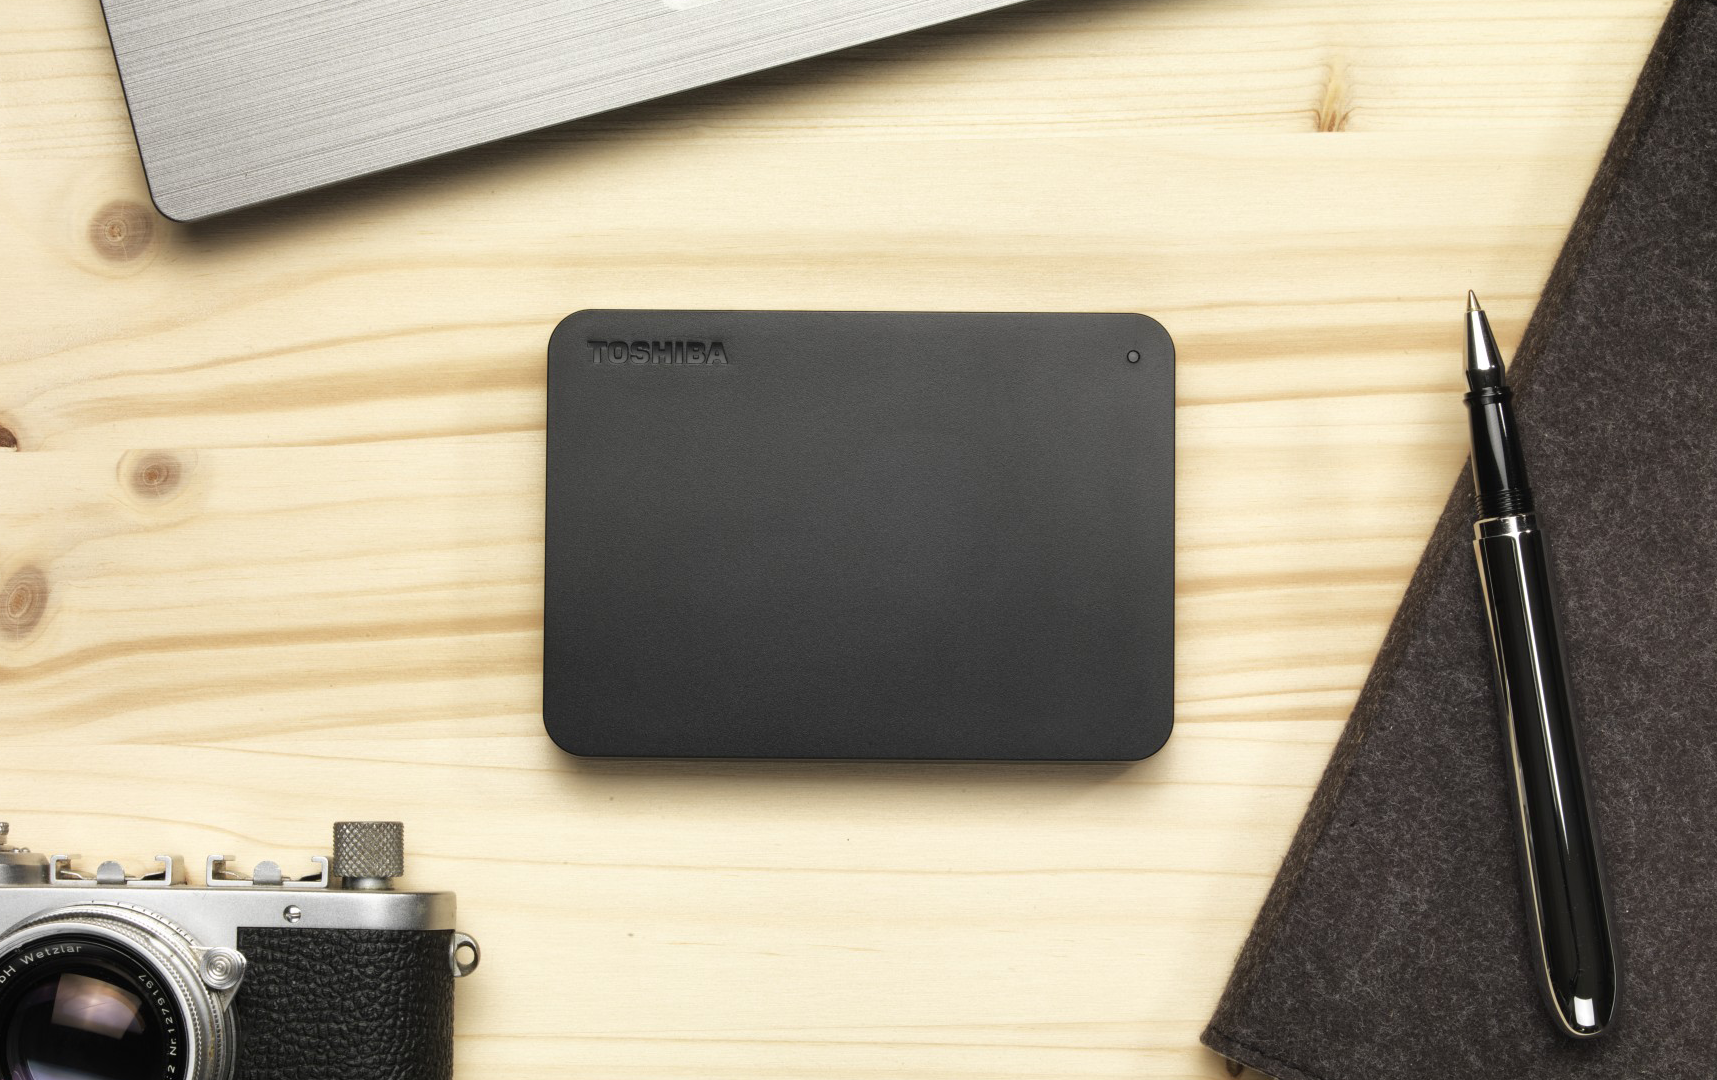 Another hard drive 4 terabyte at an affordable price